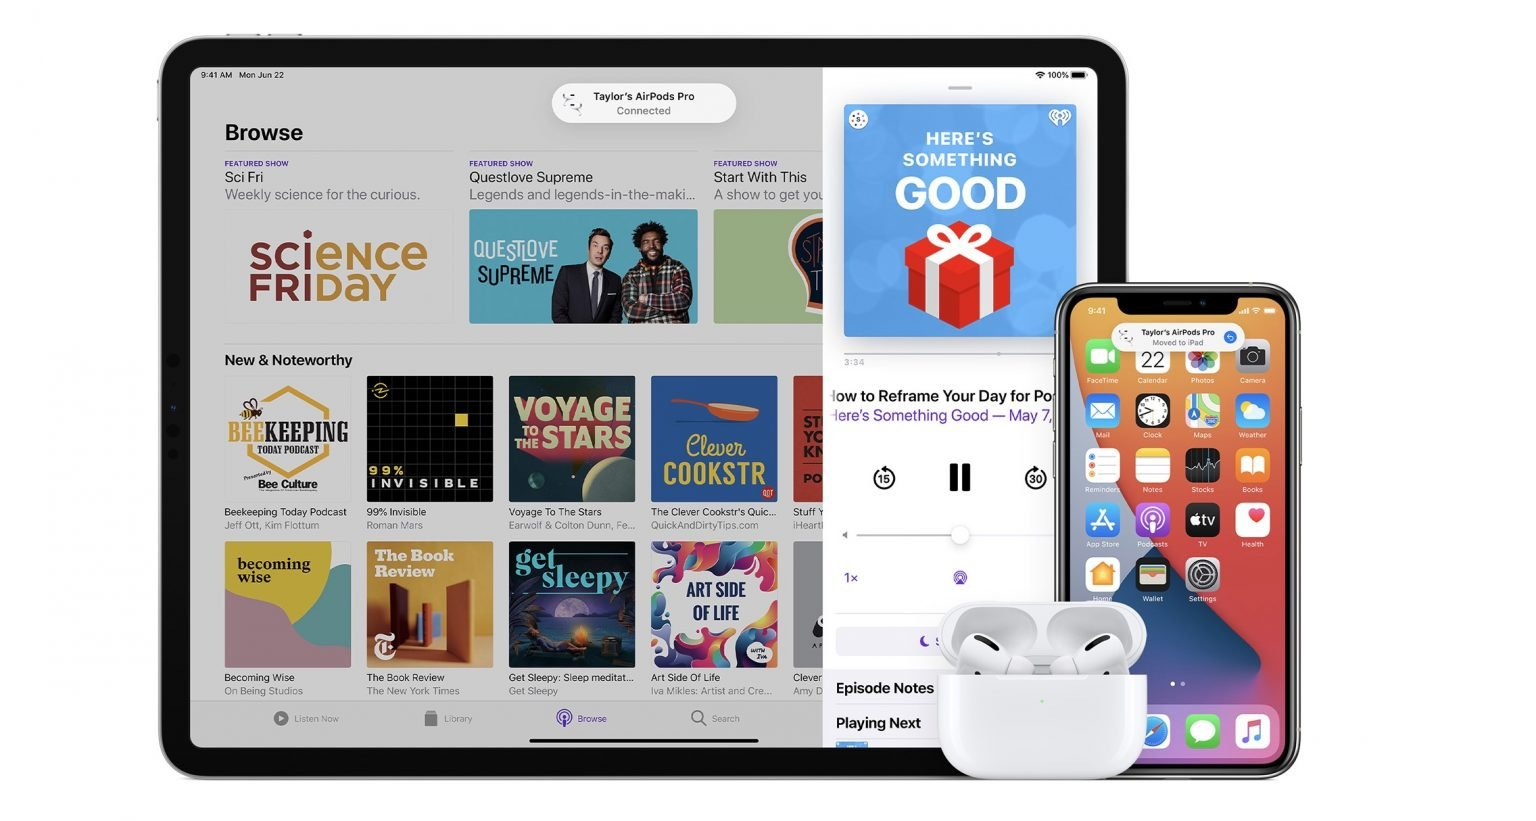 iOS 14 makes AirPods smarter and automatically switch devices